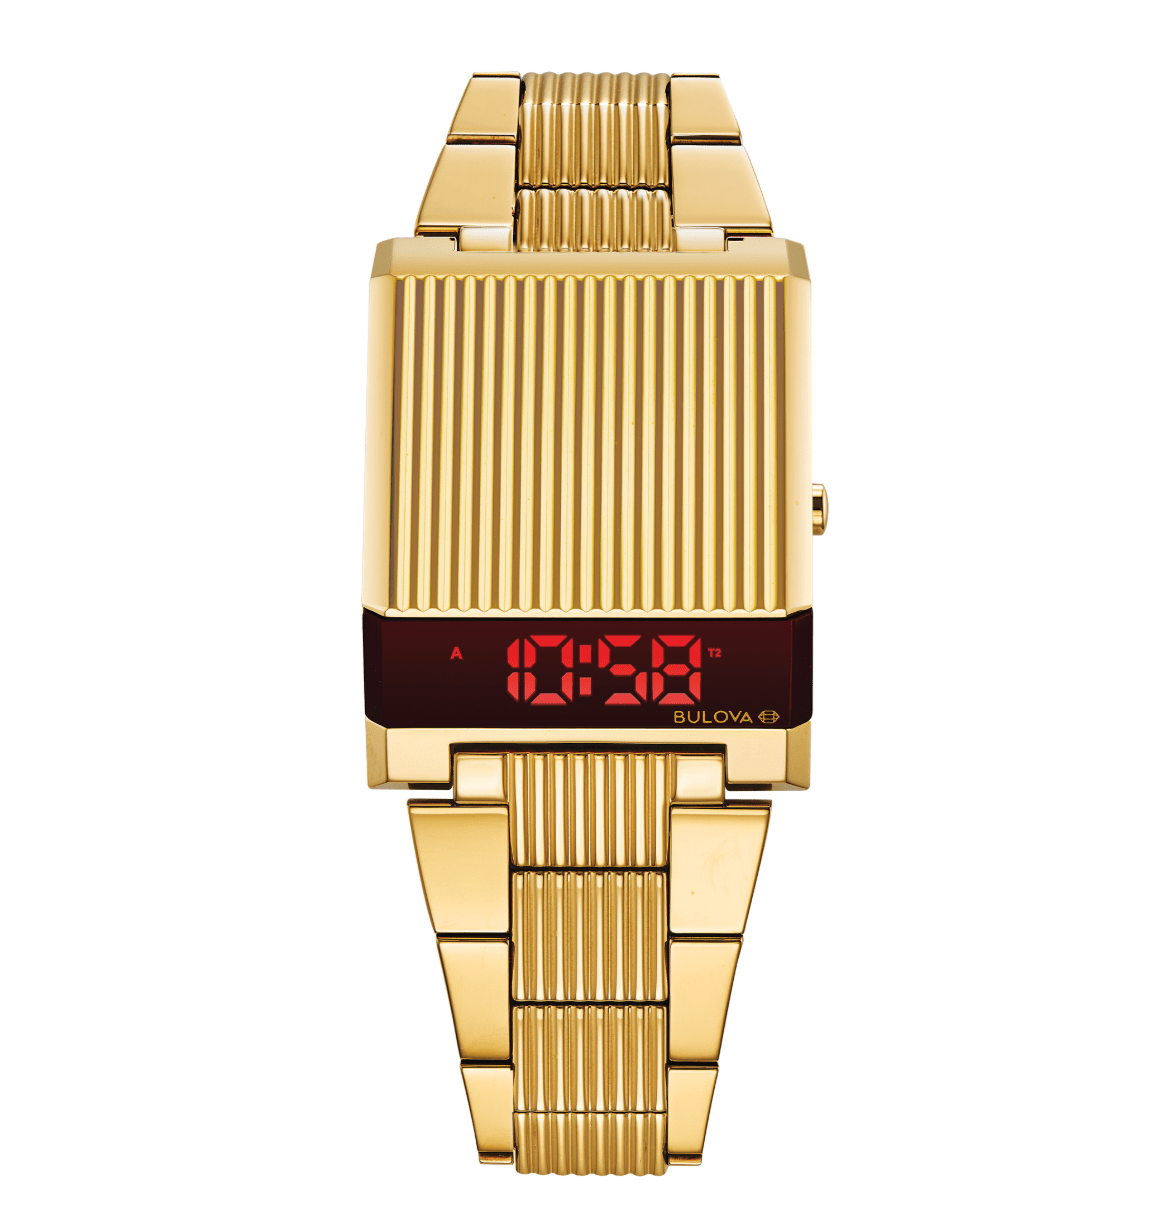 2019 Bulova Computron LED gold-tone throwback